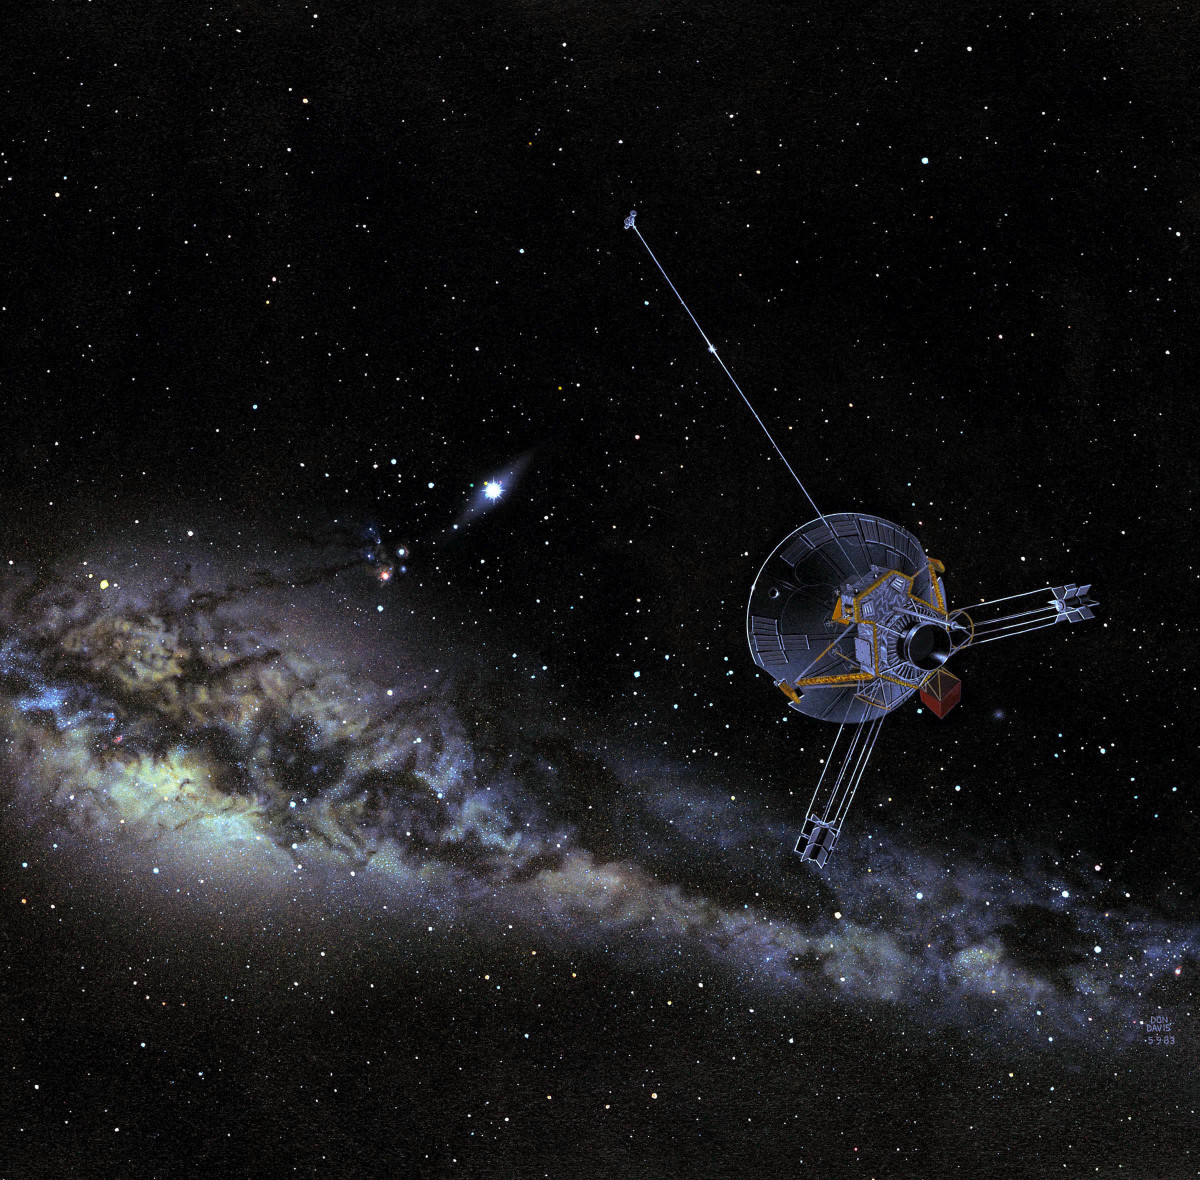 Pioneer 10 in deep space.